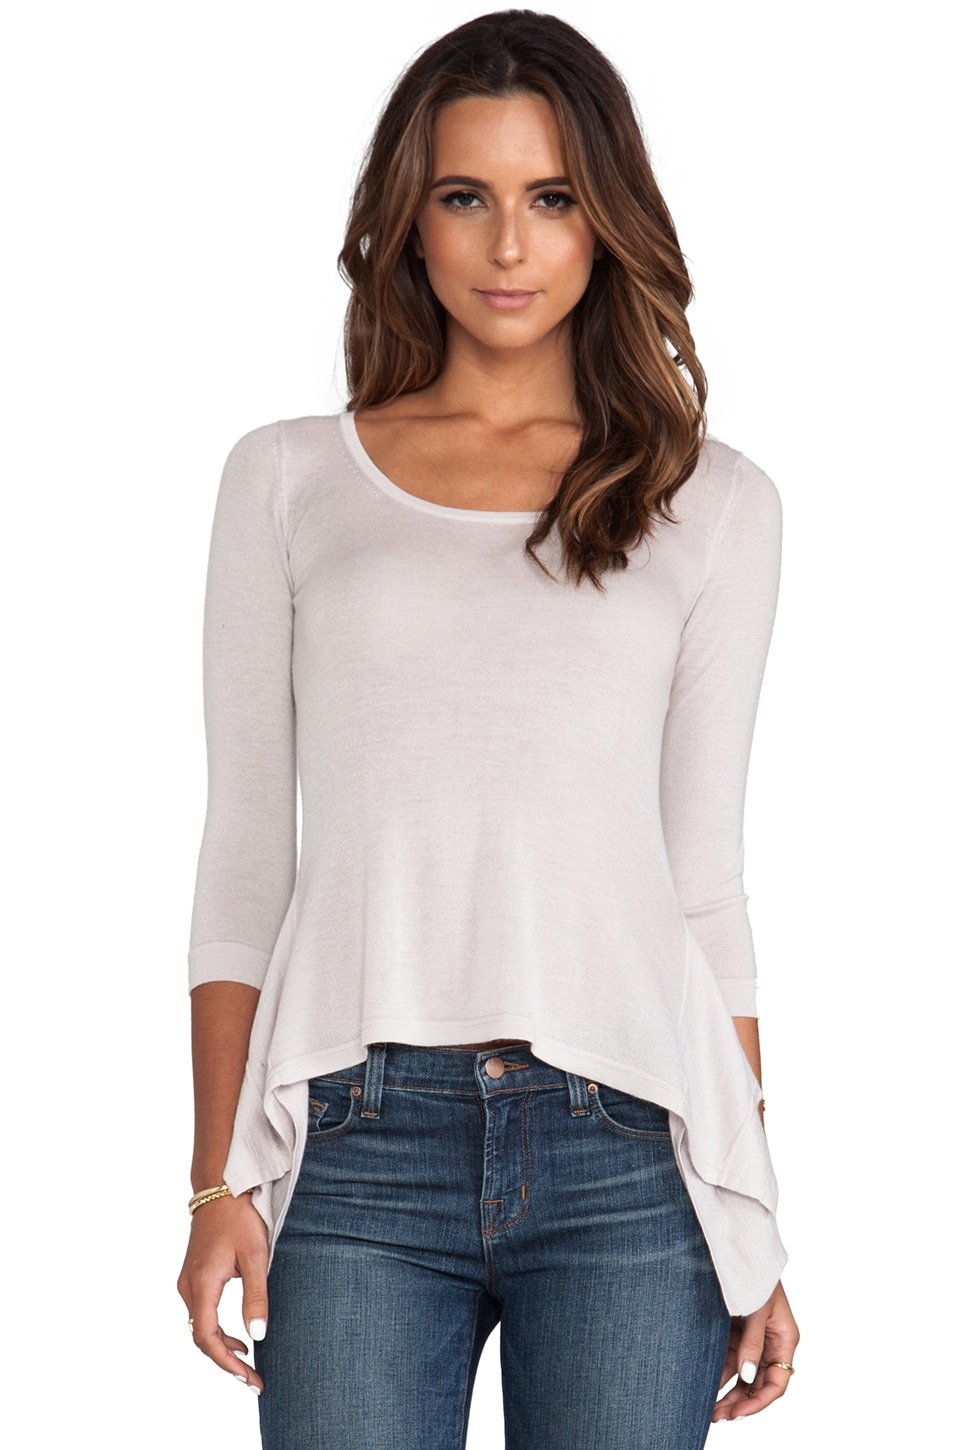 Autumn Cashmere Peplum Back Pullover in Sand Dollar